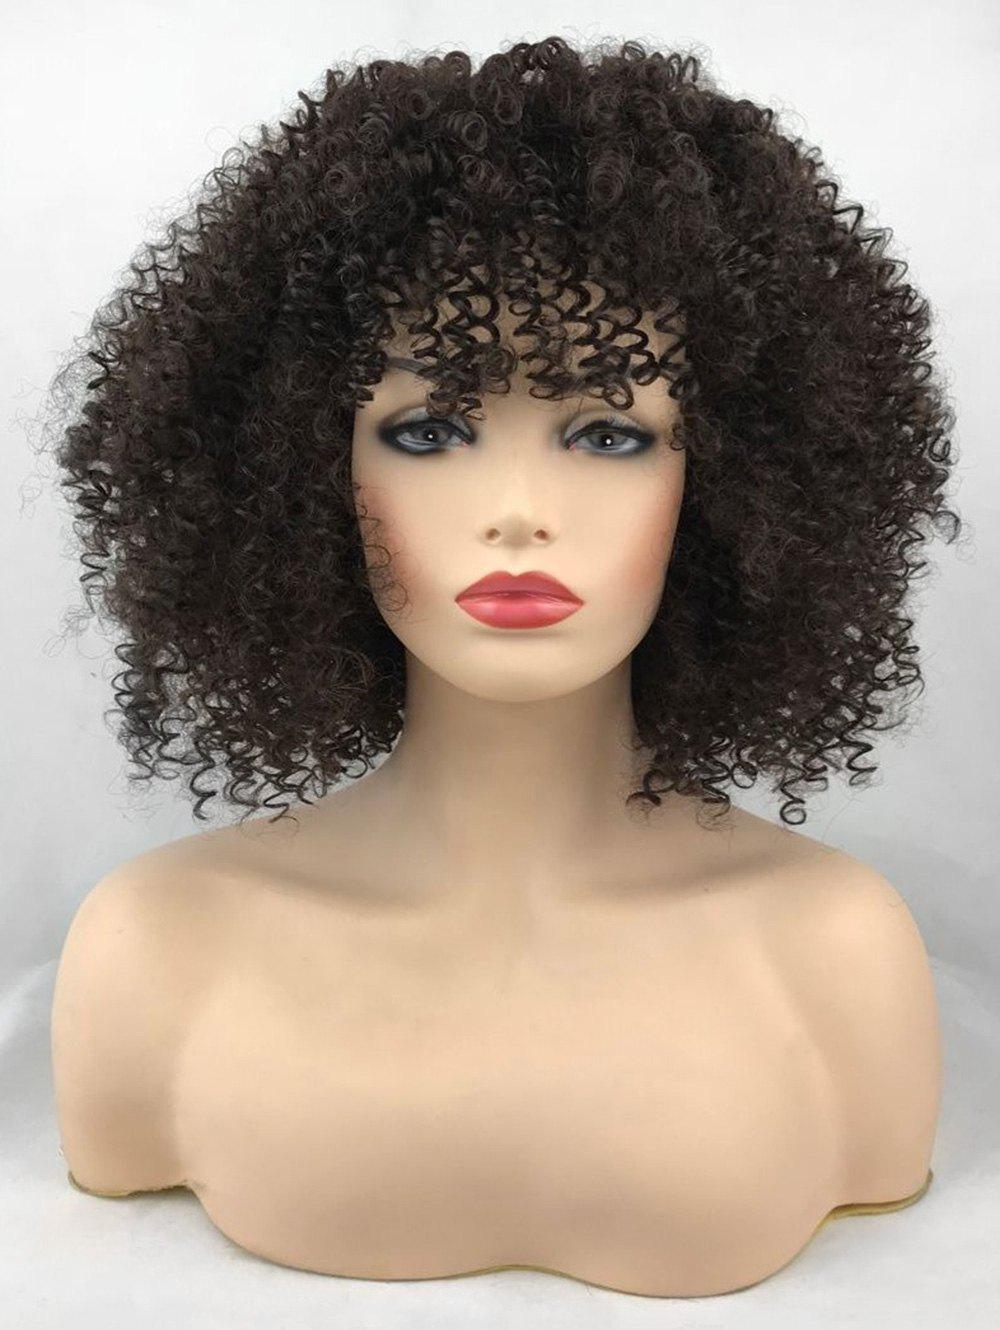 Hot Short See-through Bang Afro Curly Synthetic Wig